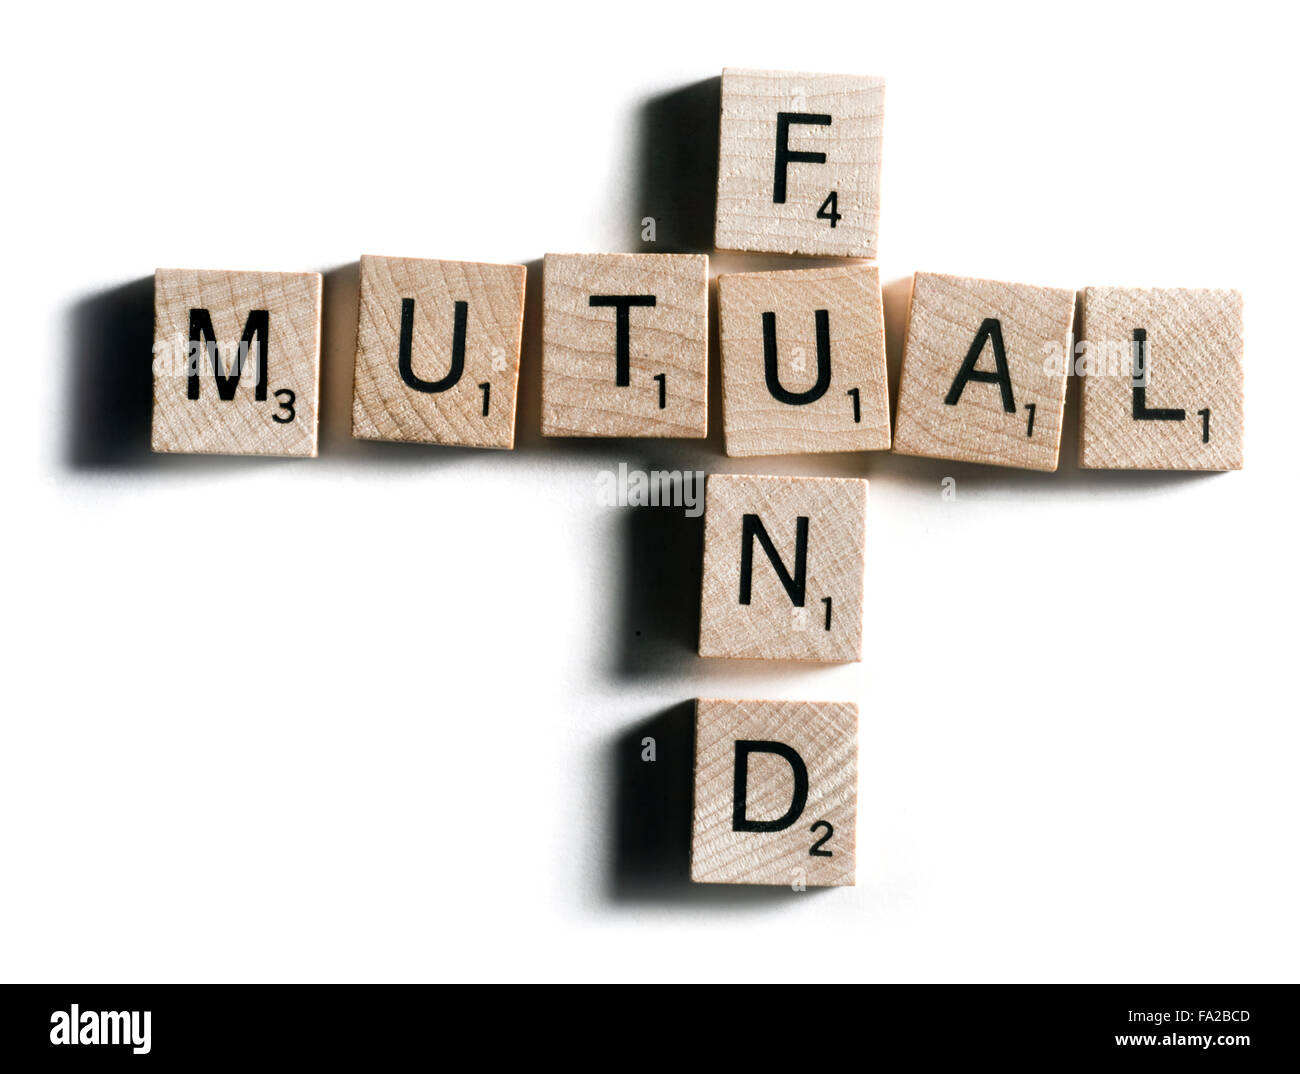 mutual fund - Stock Image